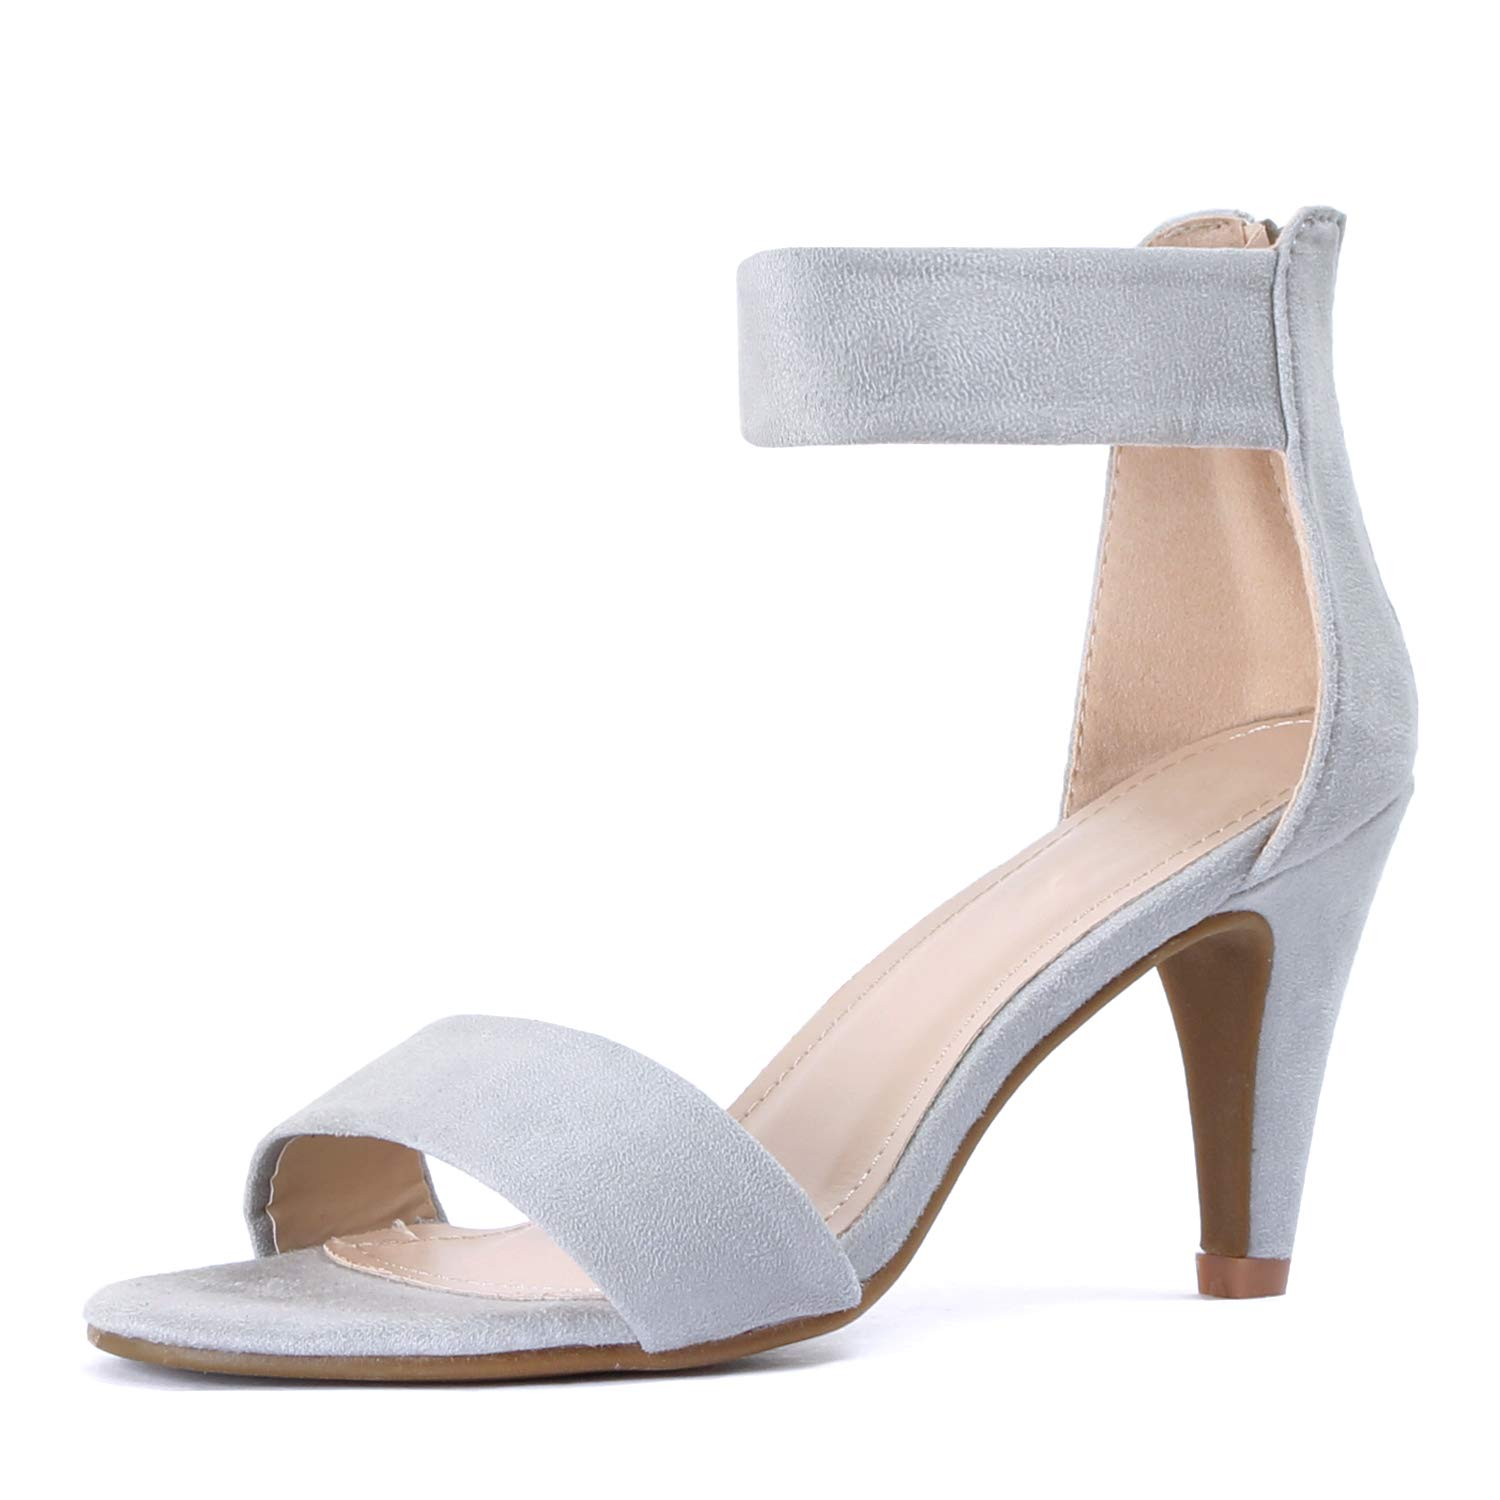 Guilty Shoes Women/'s Ankle Strap Open Toe Comfortable High Heels Dress Wedding Party Heeled Sandals